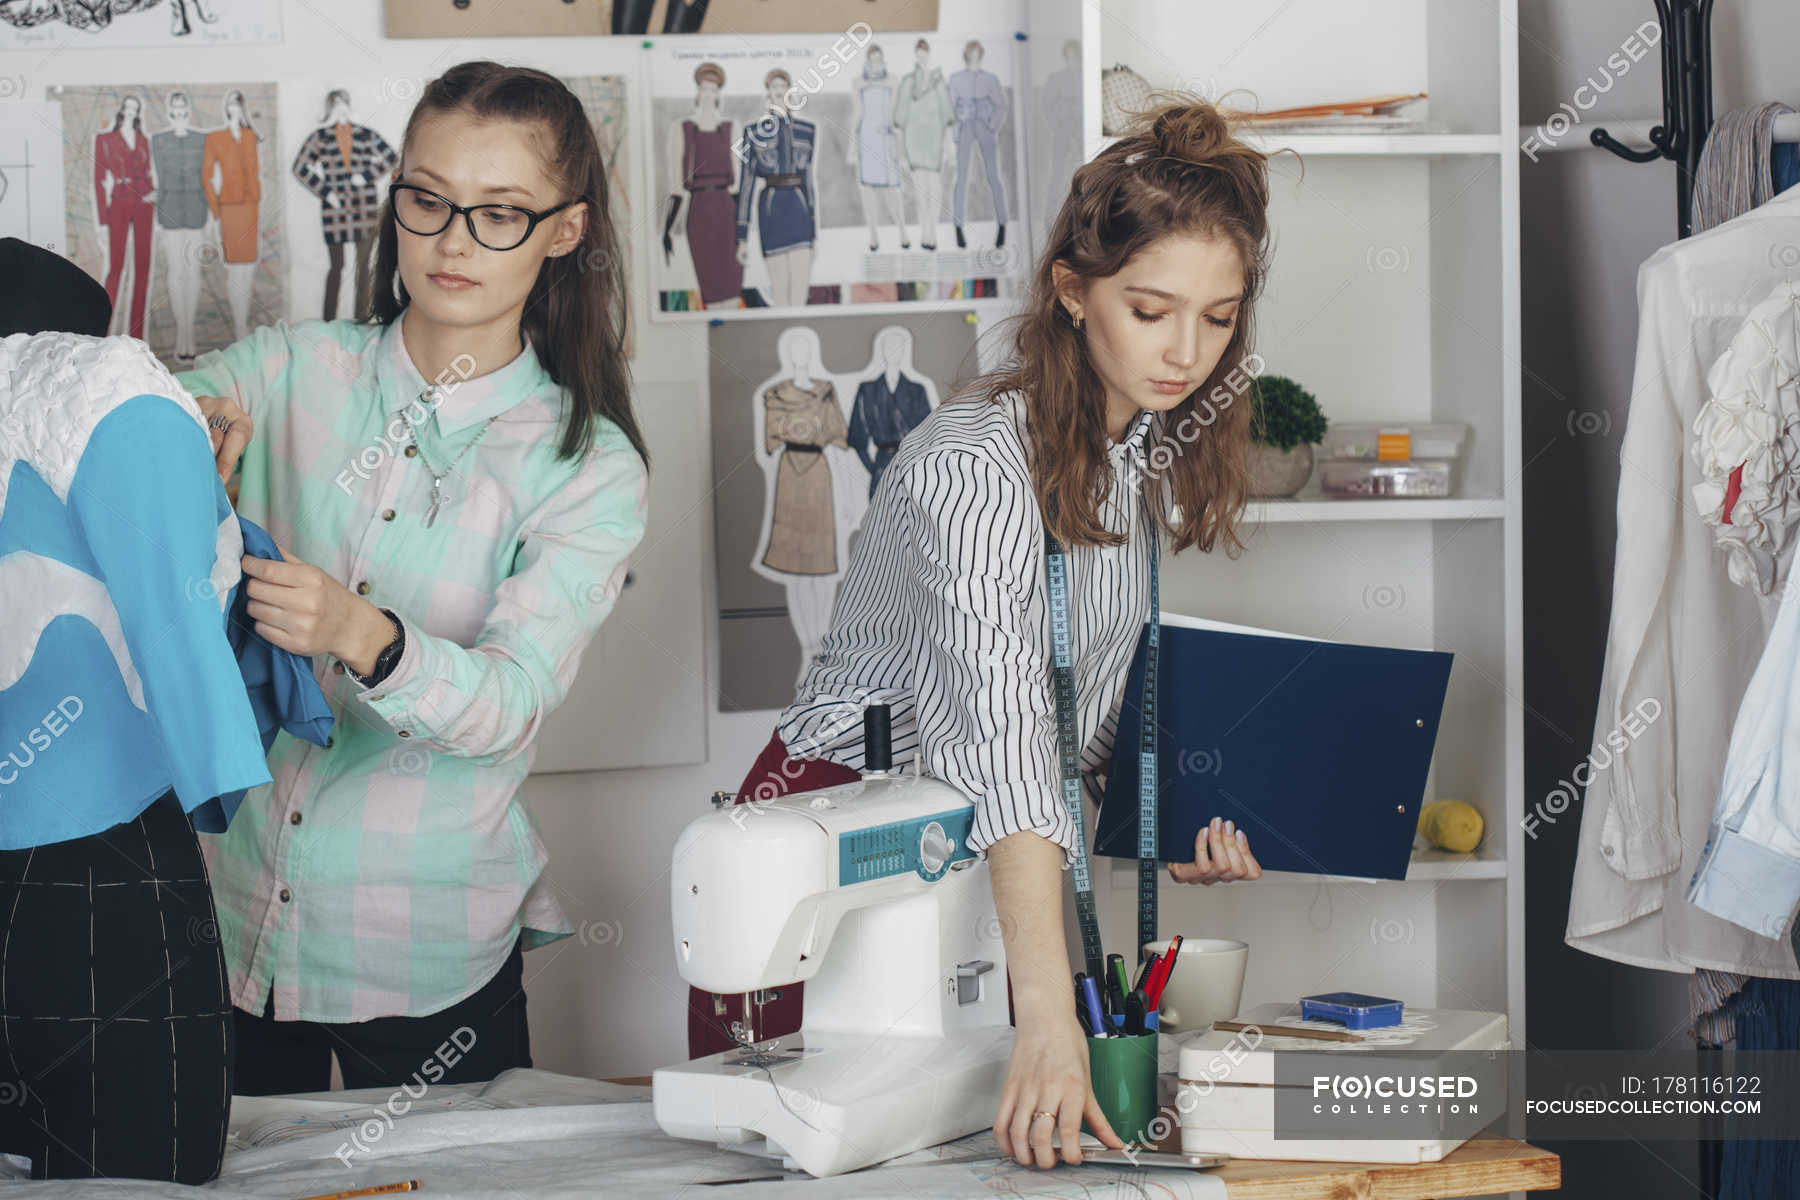 Assistant And Female Fashion Designer Working In Studio Teenager Indoors Stock Photo 178116122